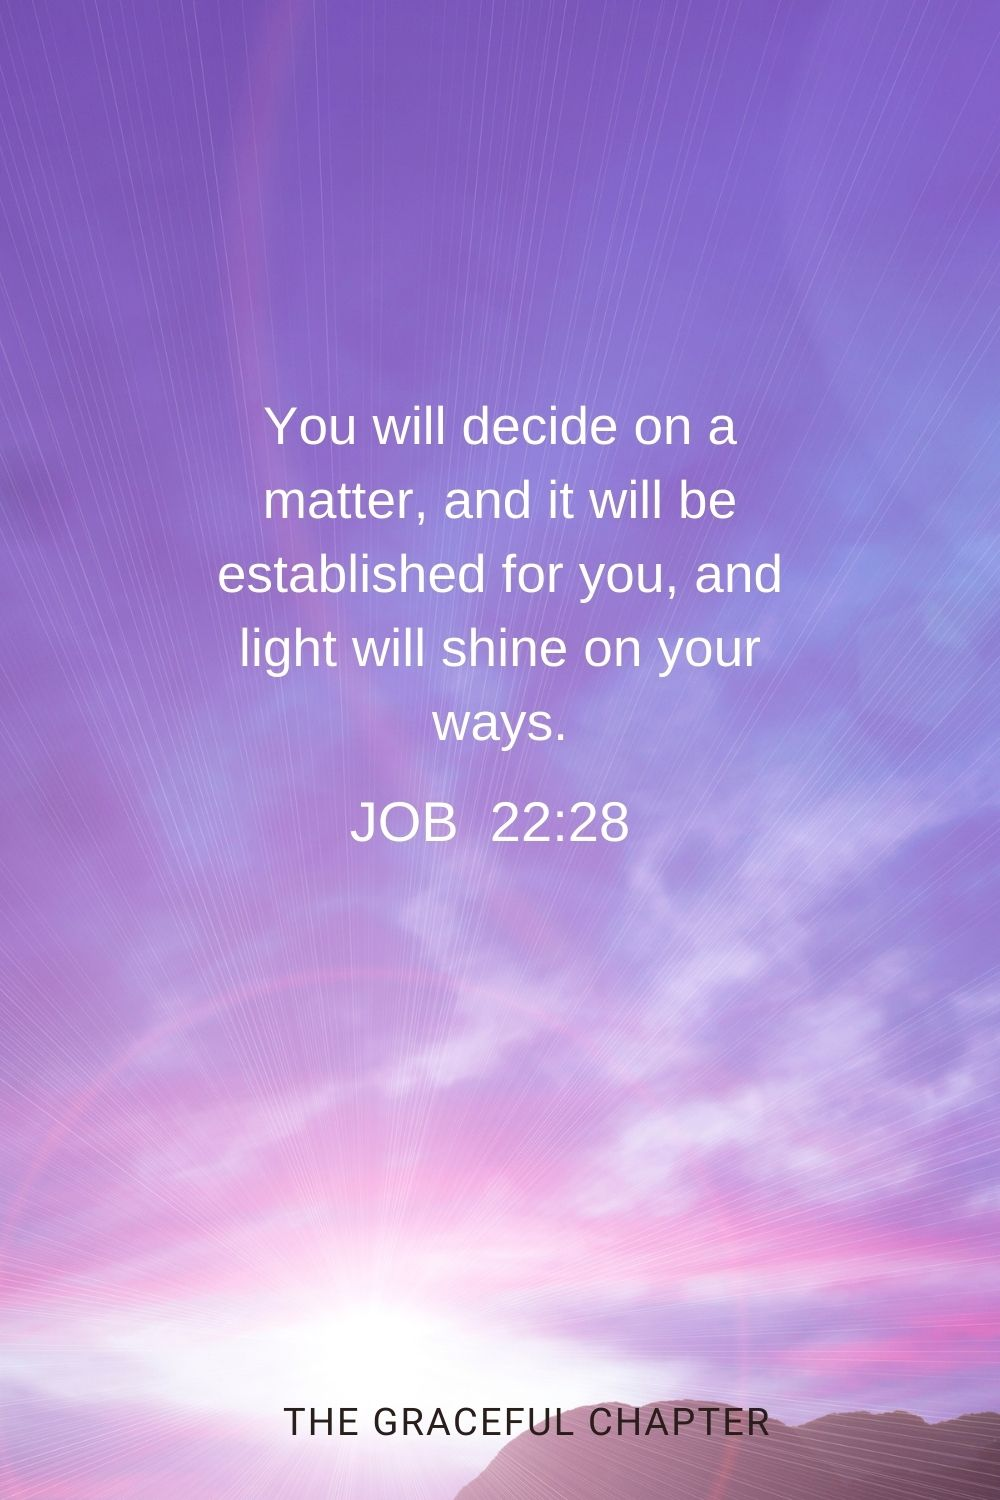 You will decide on a matter, and it will be established for you, and light will shine on your ways. Job 22:28